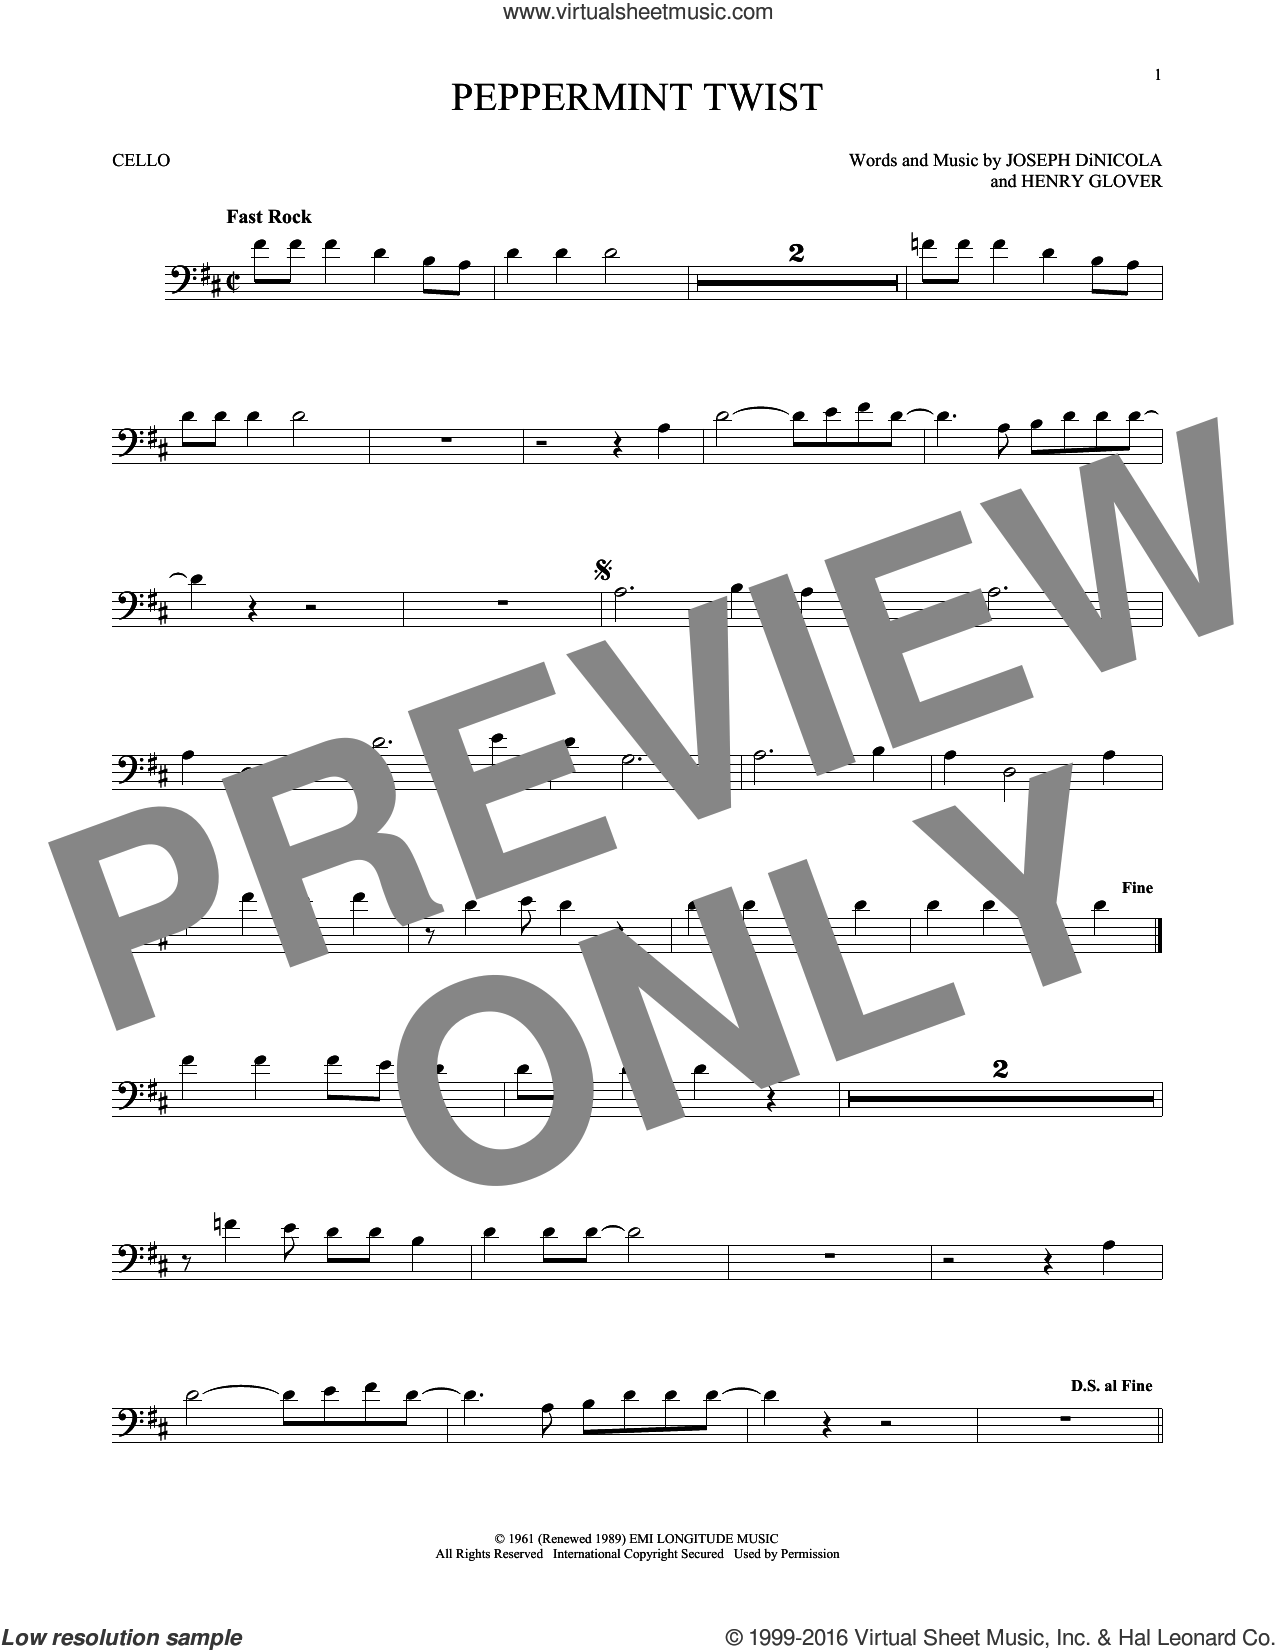 Peppermint Twist sheet music for cello solo by Joey Dee & The Starliters. Score Image Preview.